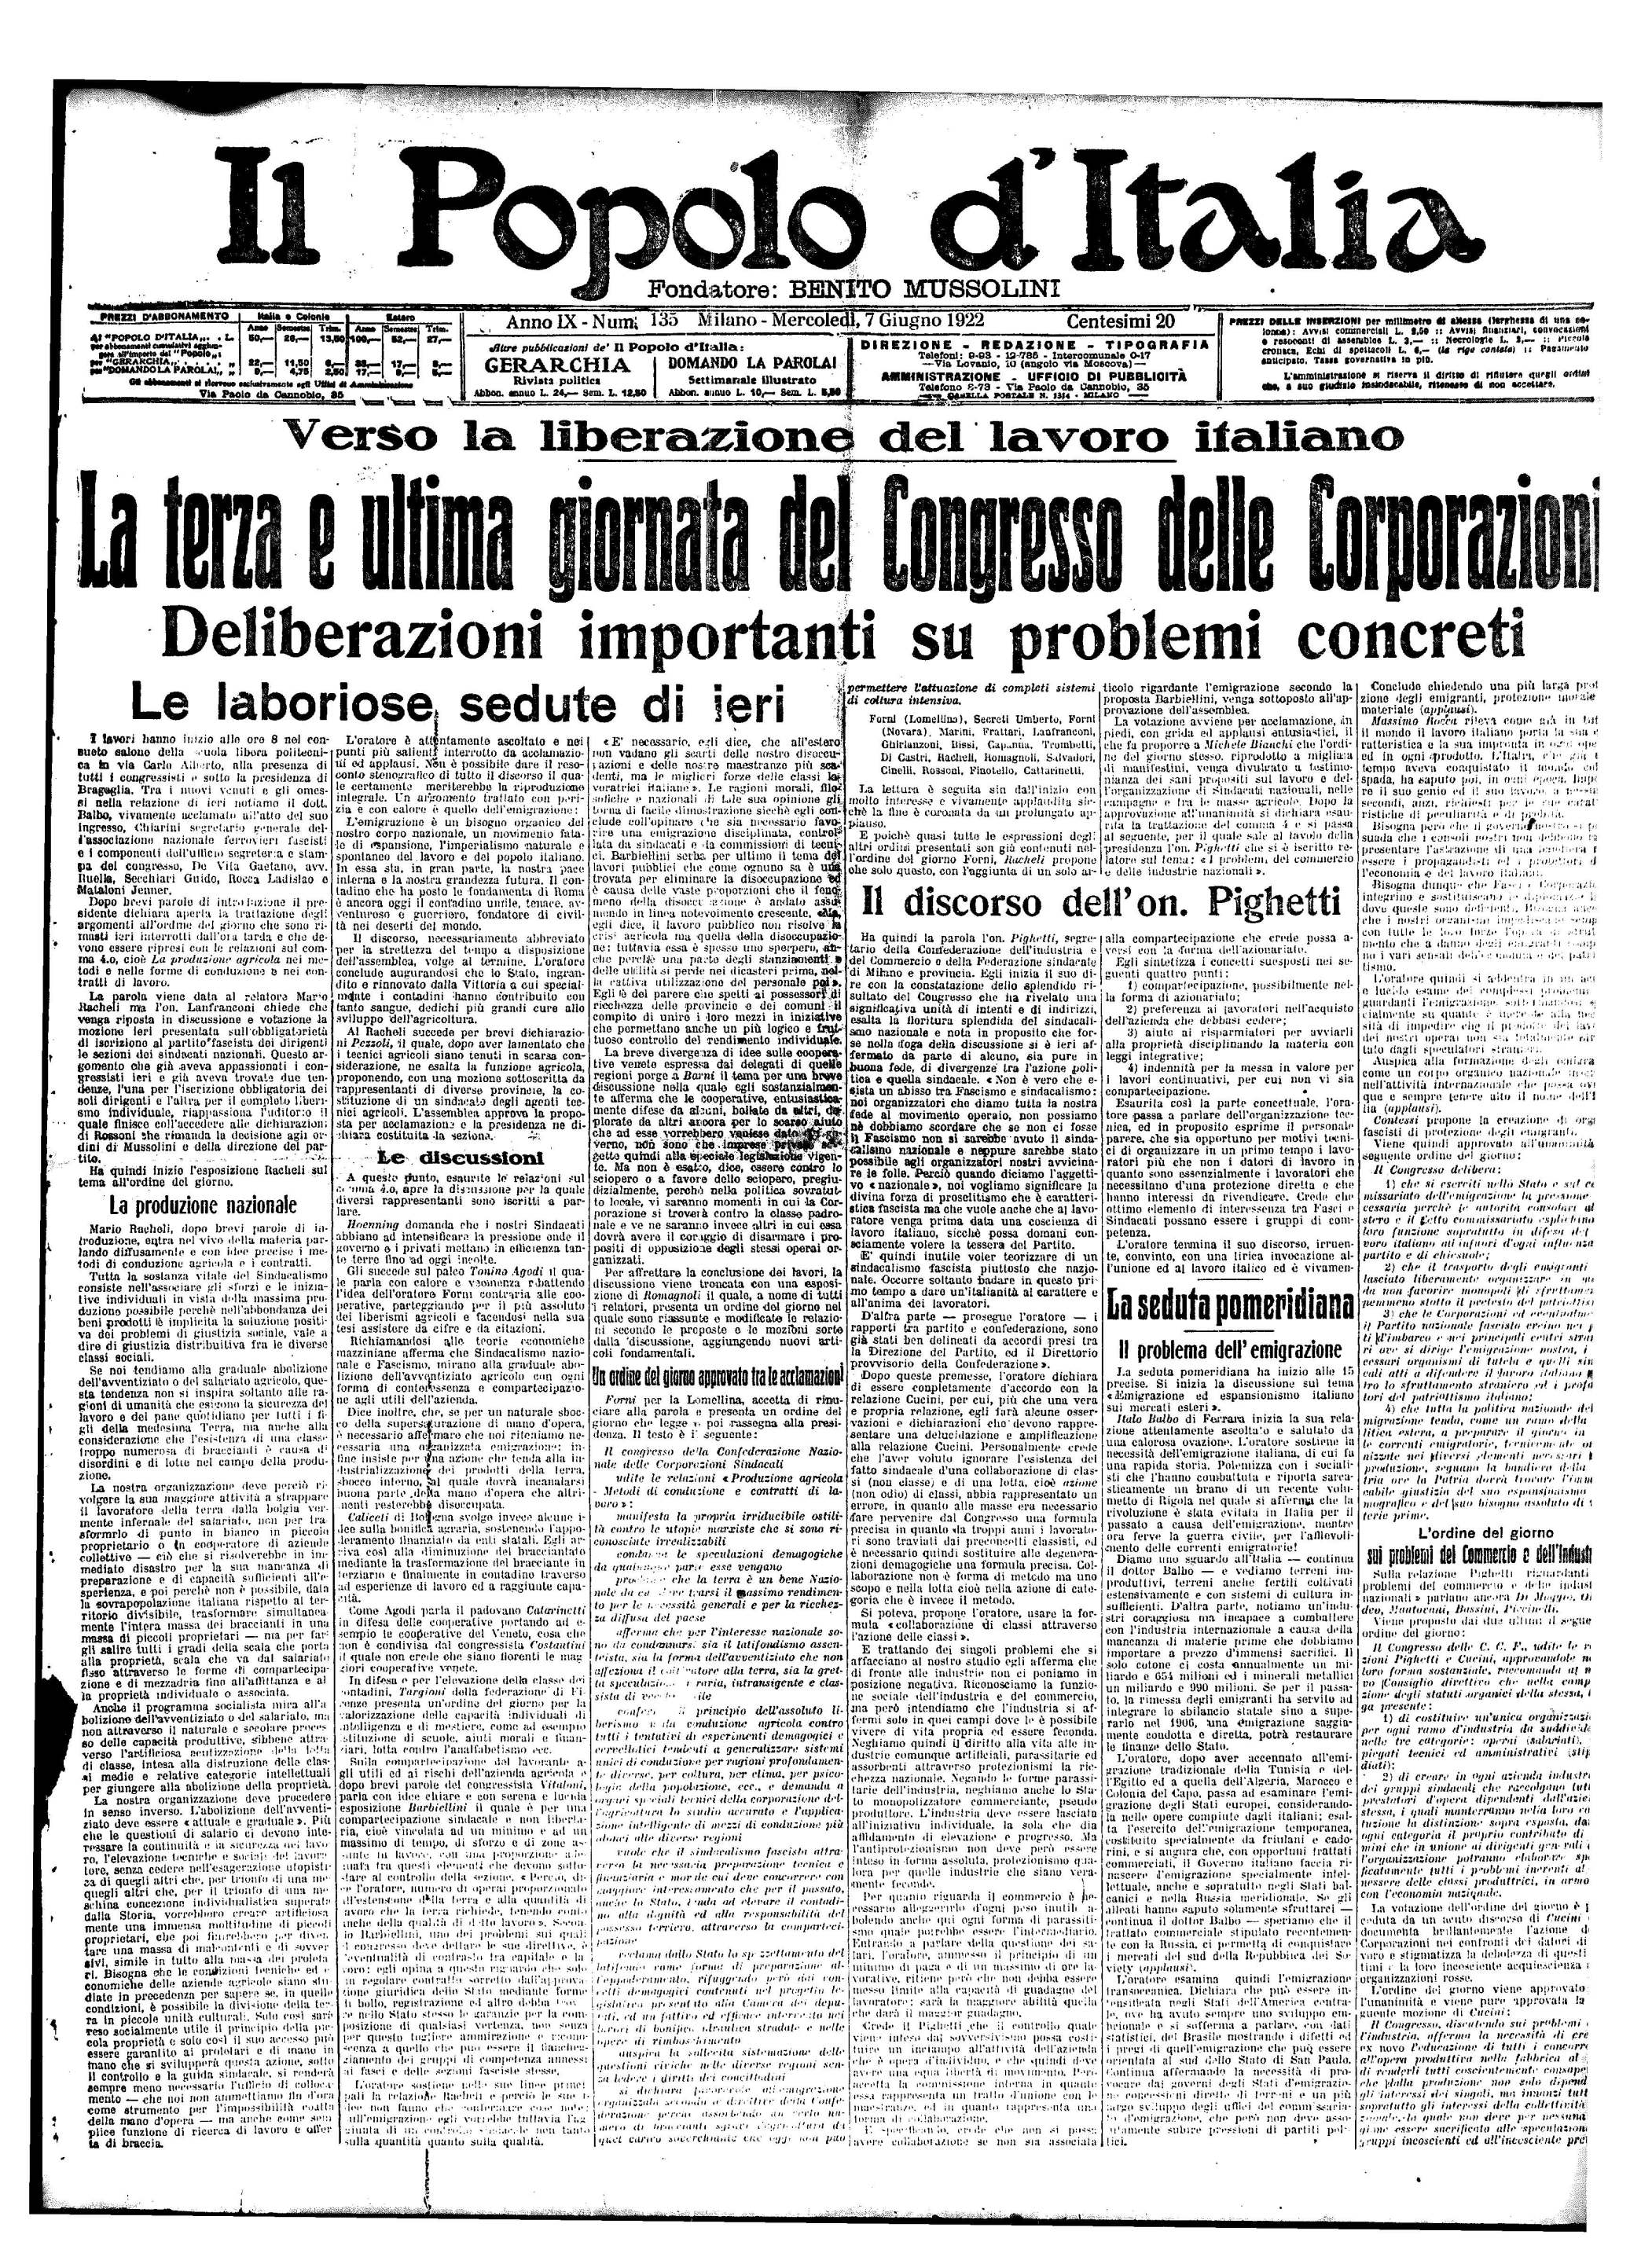 Index of /pub/images/materiale_a_stampa/periodico/Popolo d